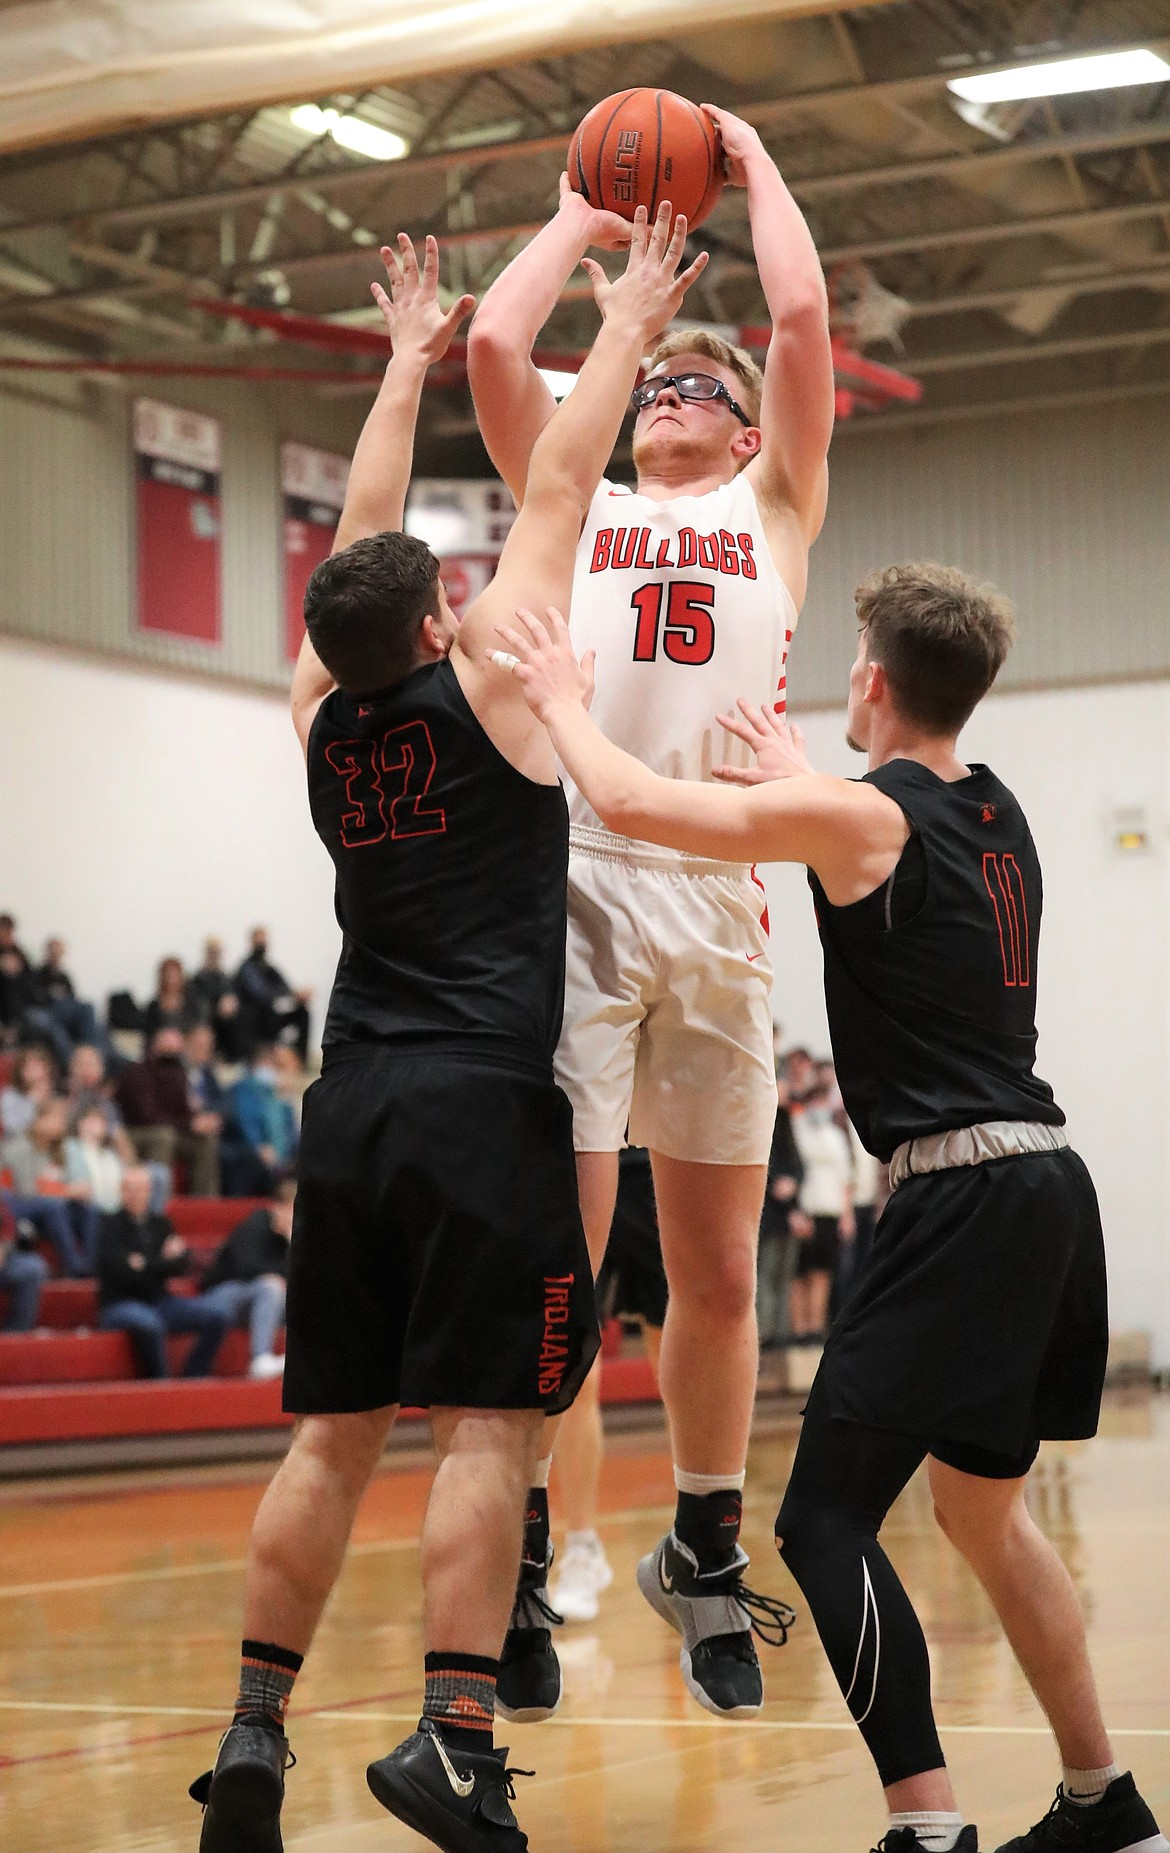 Ethan Butler elevates for a jumper over the Post Falls defense.